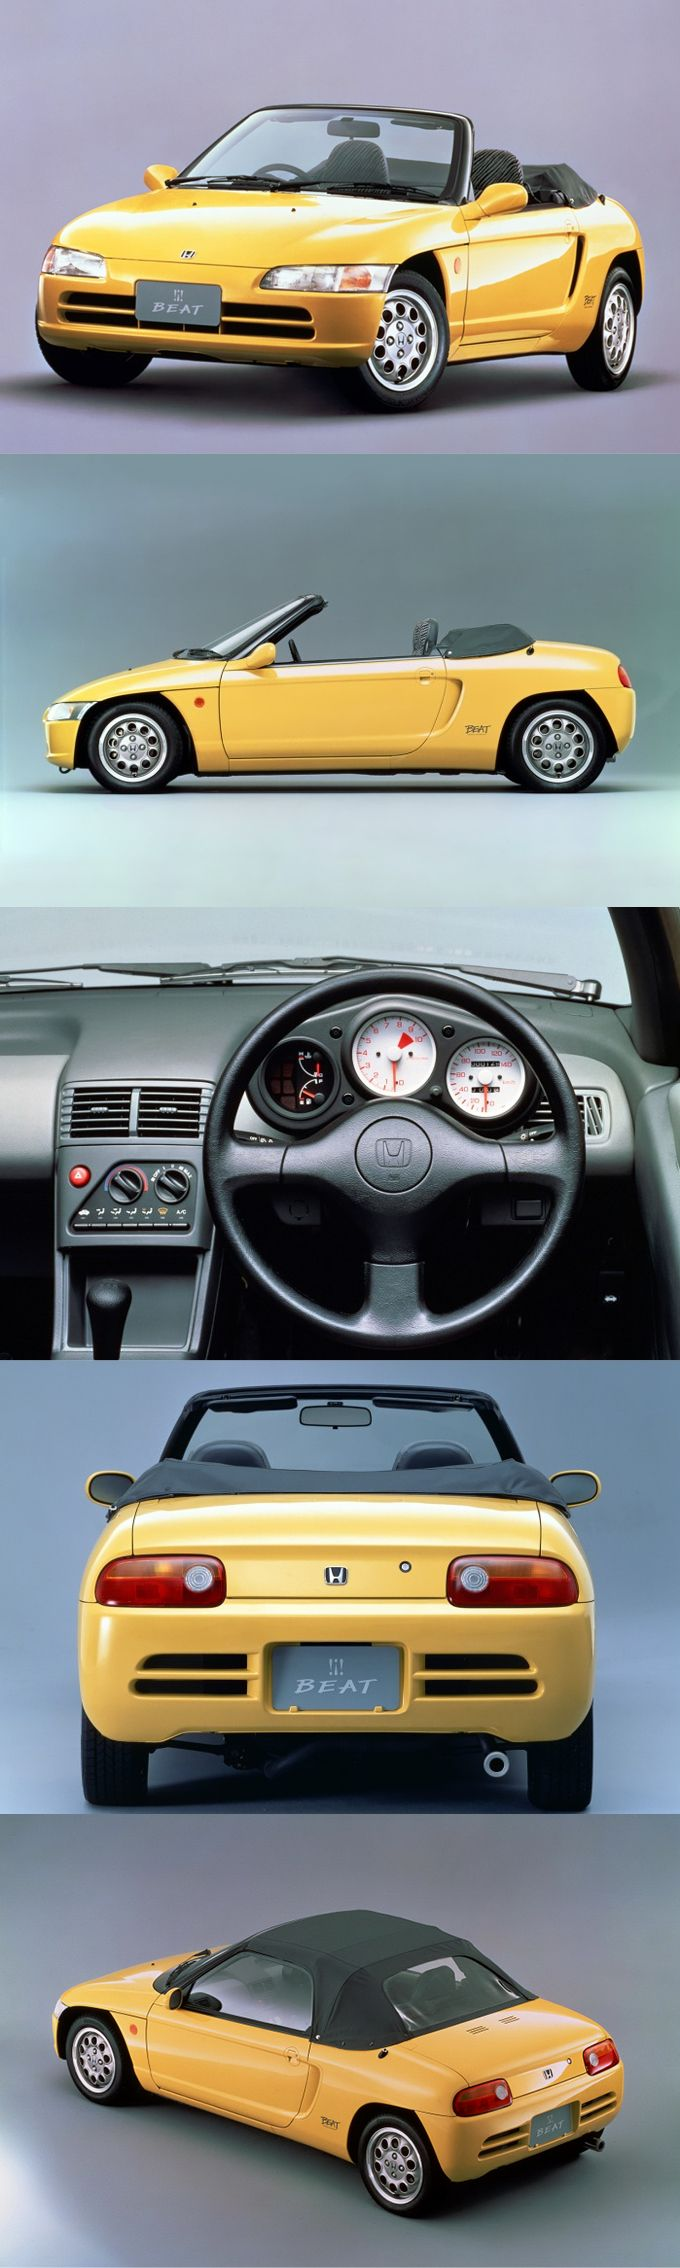 176 best 90s Japanese Cars images on Pinterest | Carriage house, 80 ...